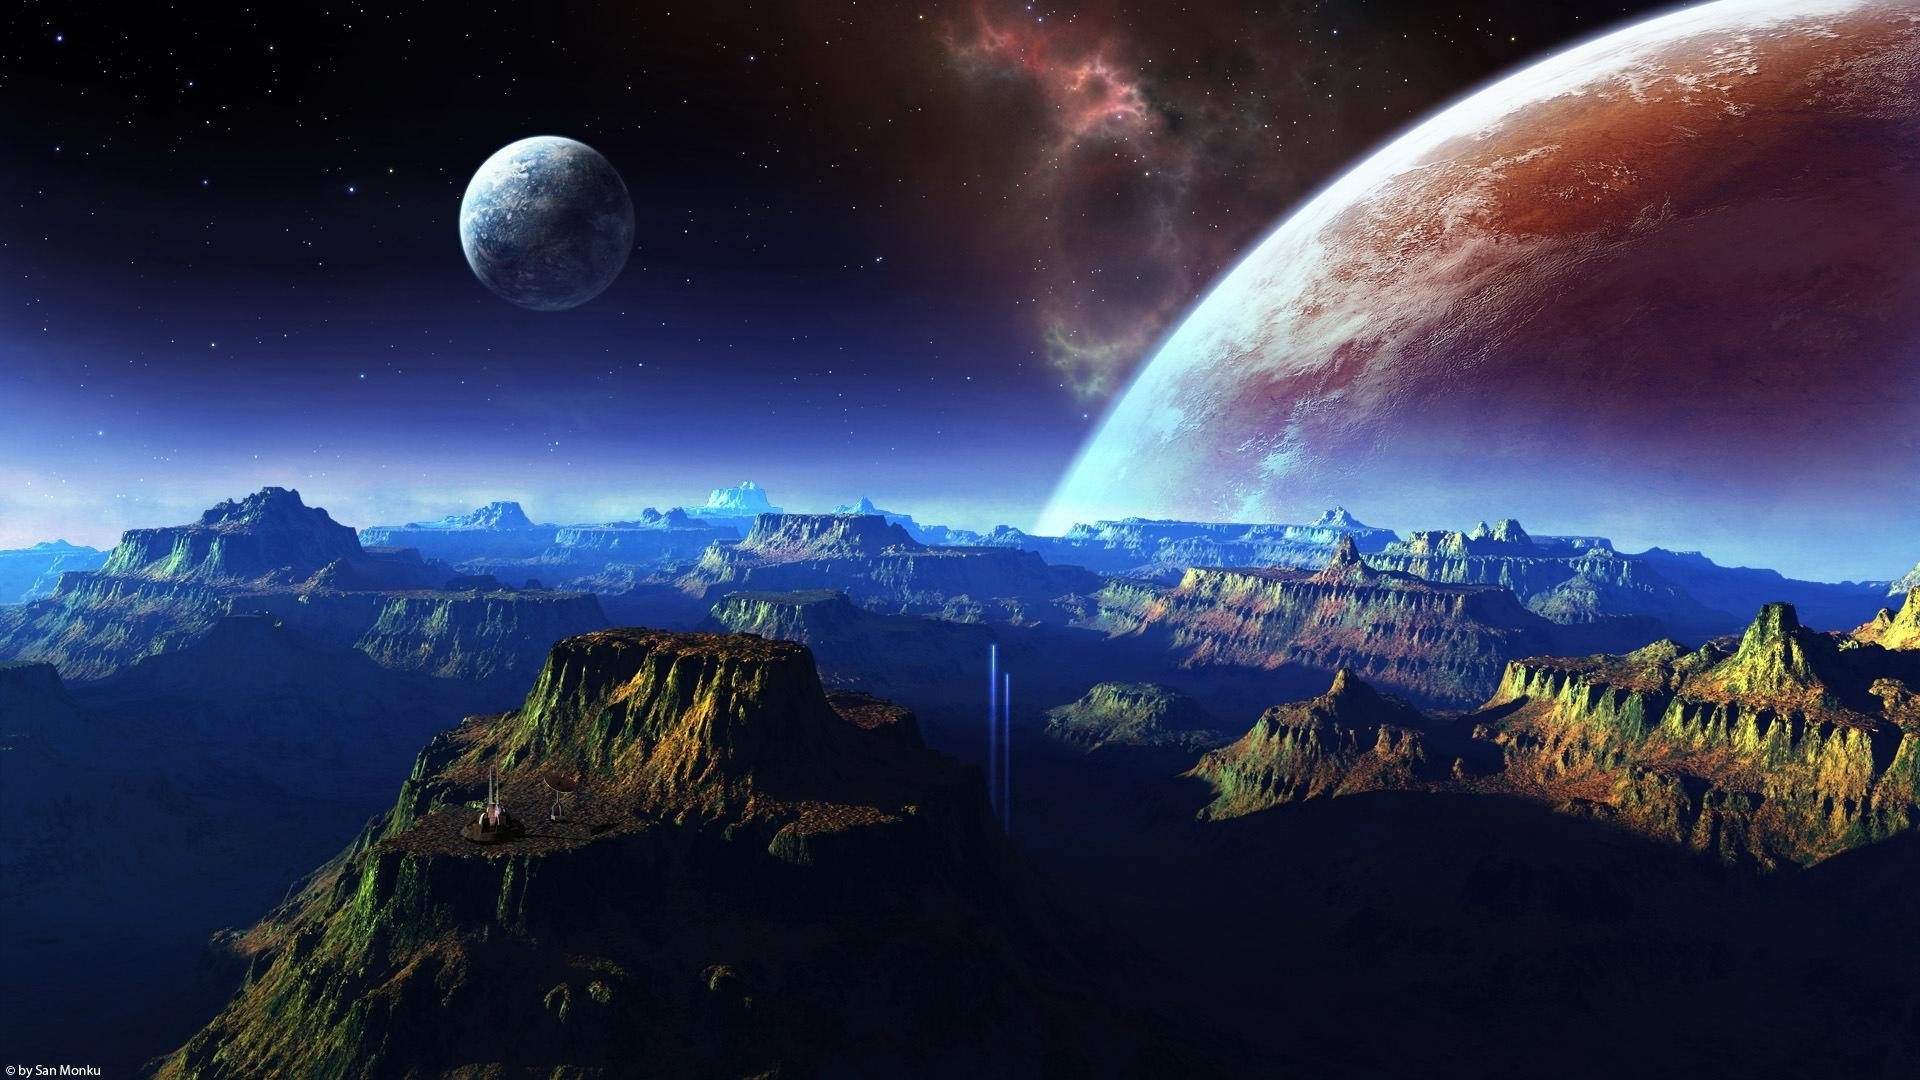 10 most popular desktop background space 1920x1080 full hd 1920×1080